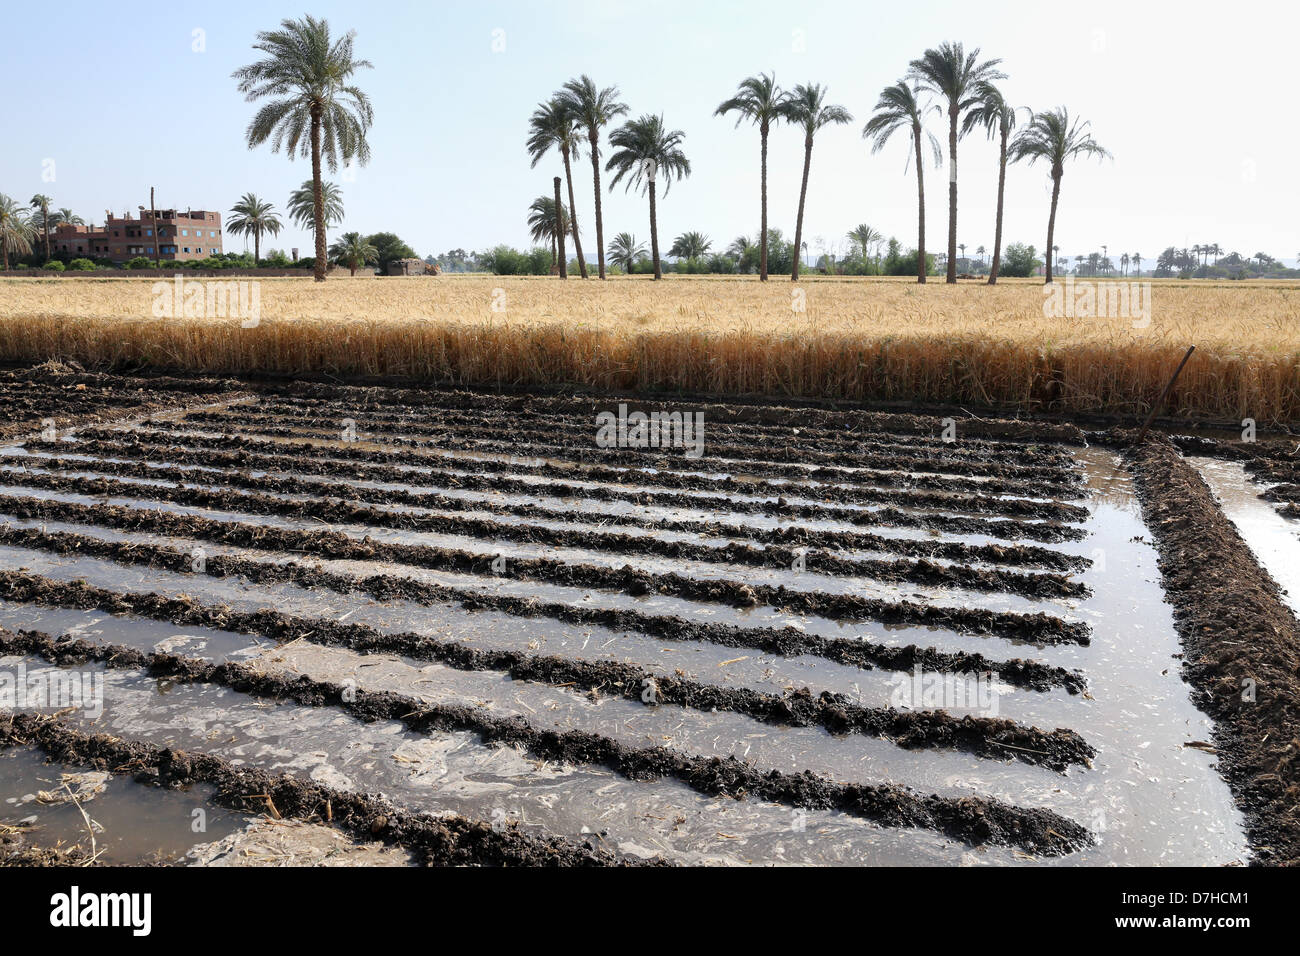 irrigation channel crops wheat field in Upper Egypt - Stock Image